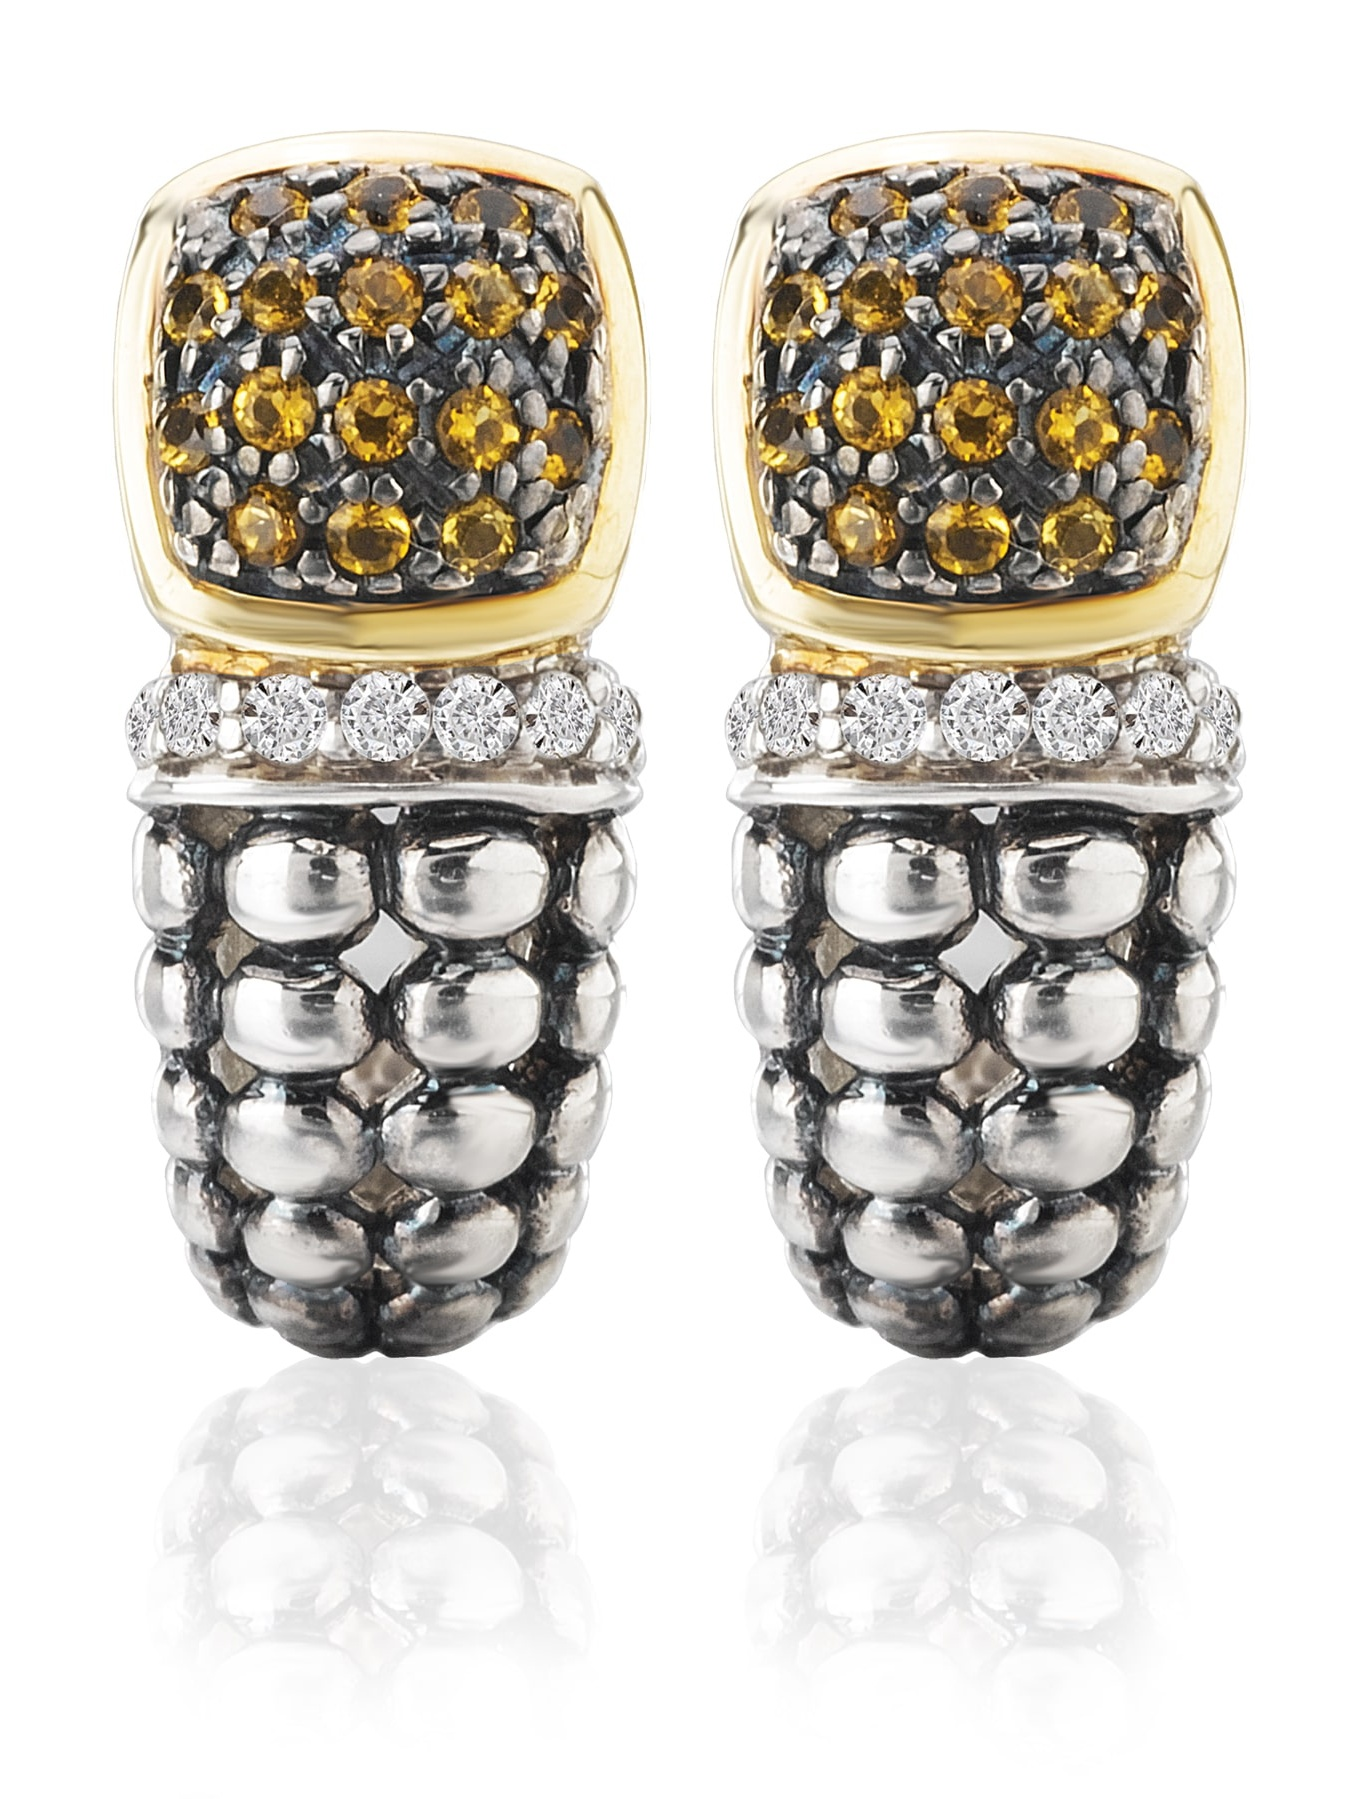 Avanti Palladium Silver 18k Yellow Gold Citrine and White Sapphire Earrings by Overstock